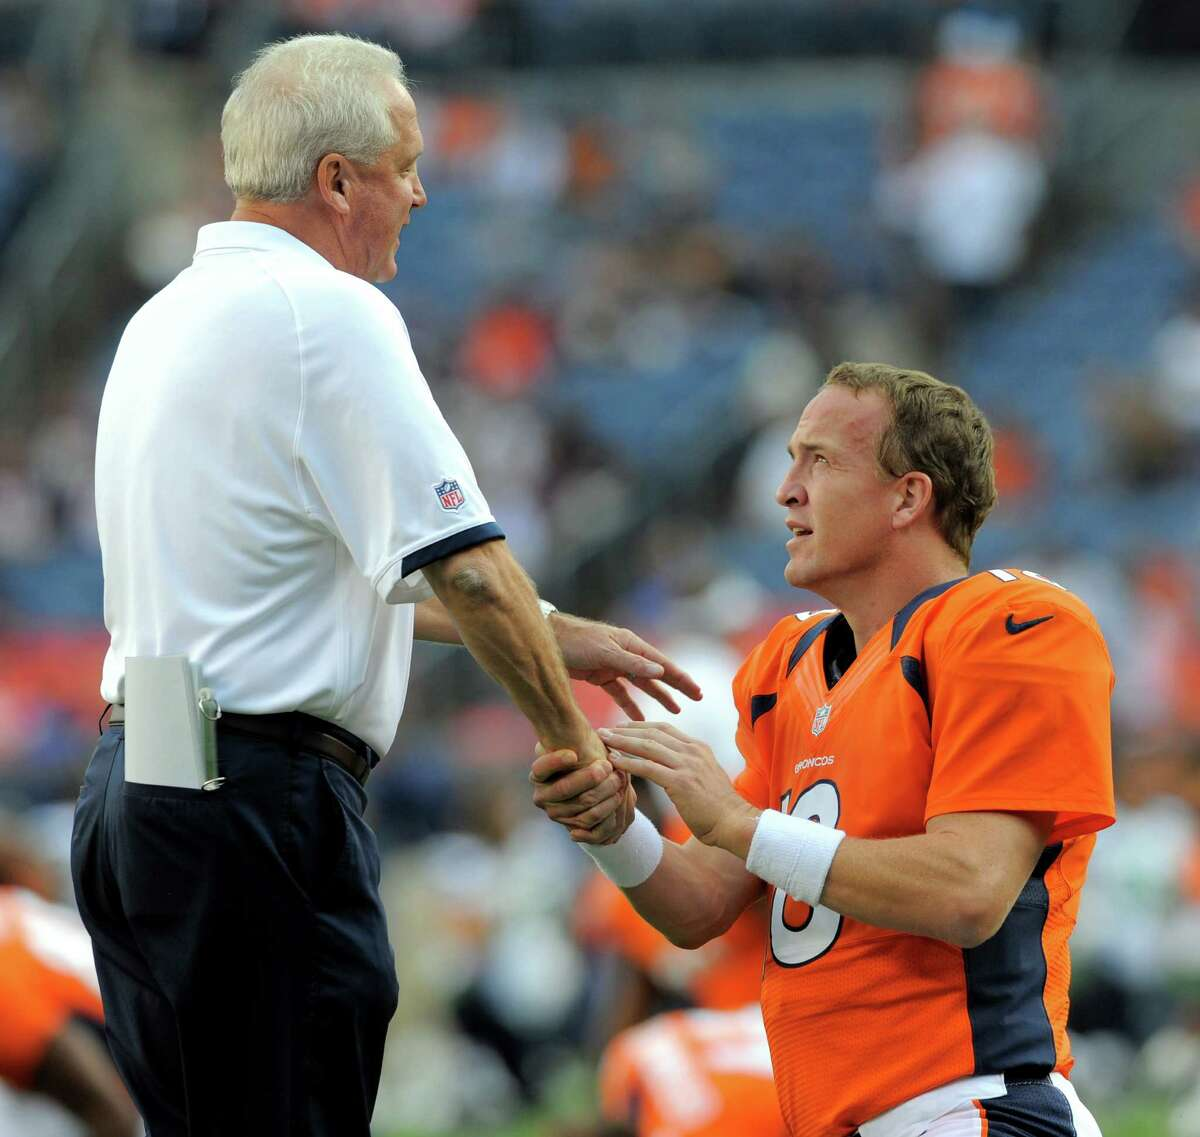 Denver Broncos head coach John Fox, left, greets quarterback Peyton Manning, right, during pregame stretching.